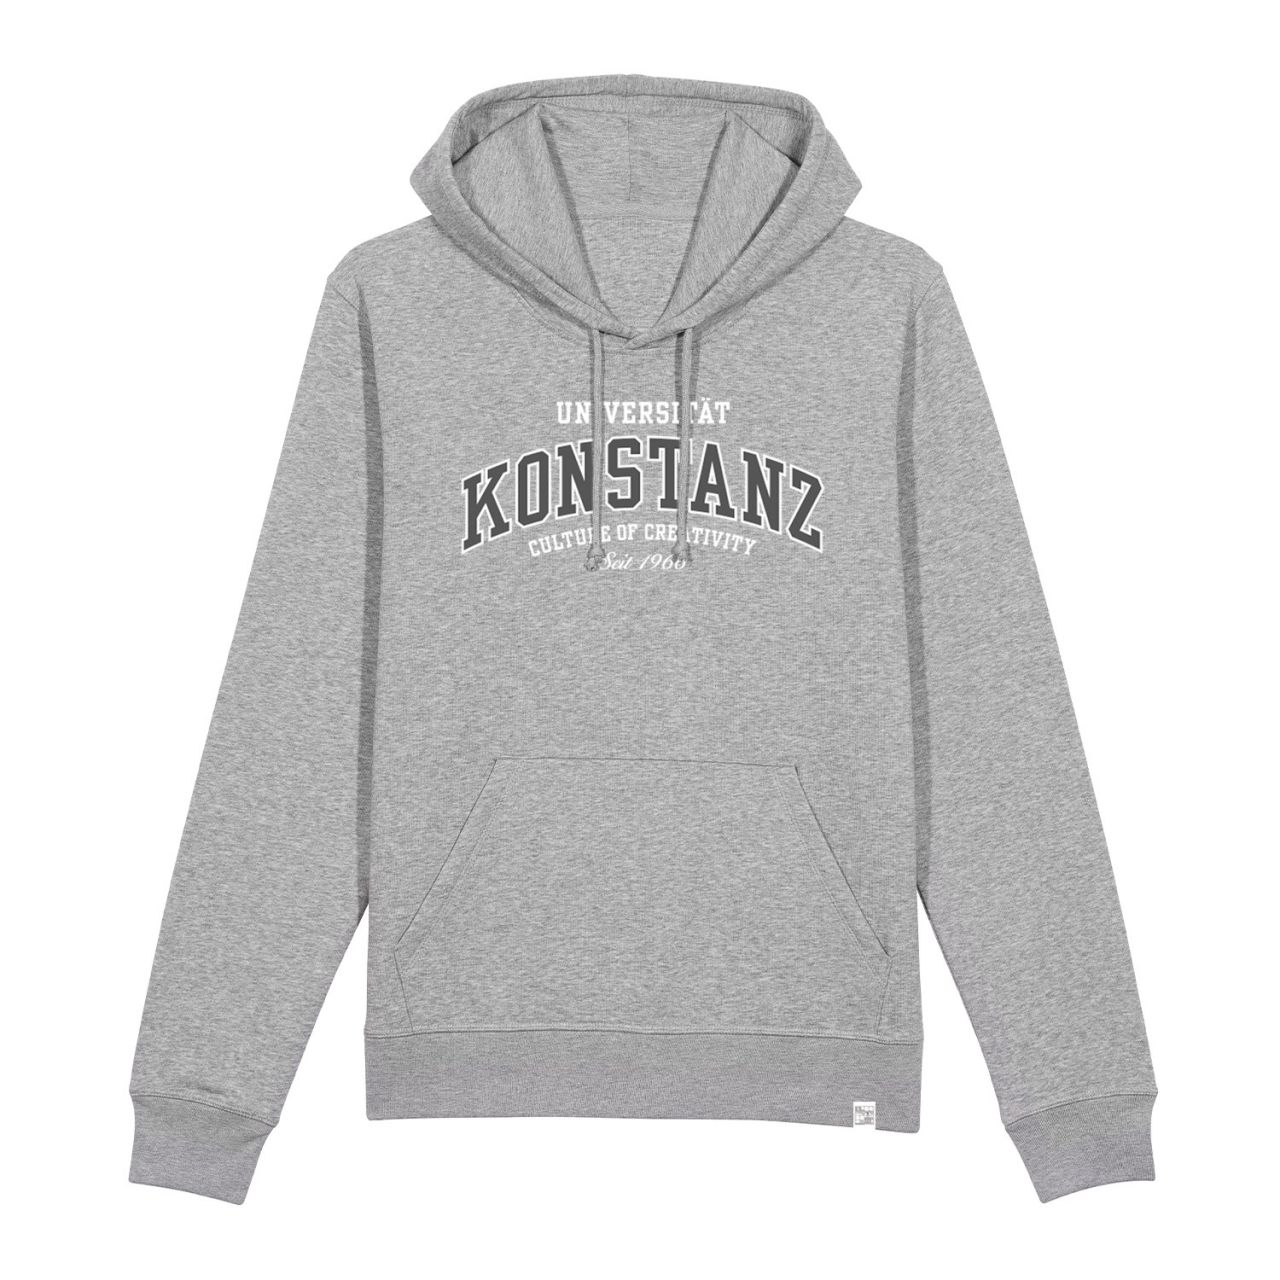 Unisex Organic Hooded Sweatshirt, heather grey, texas